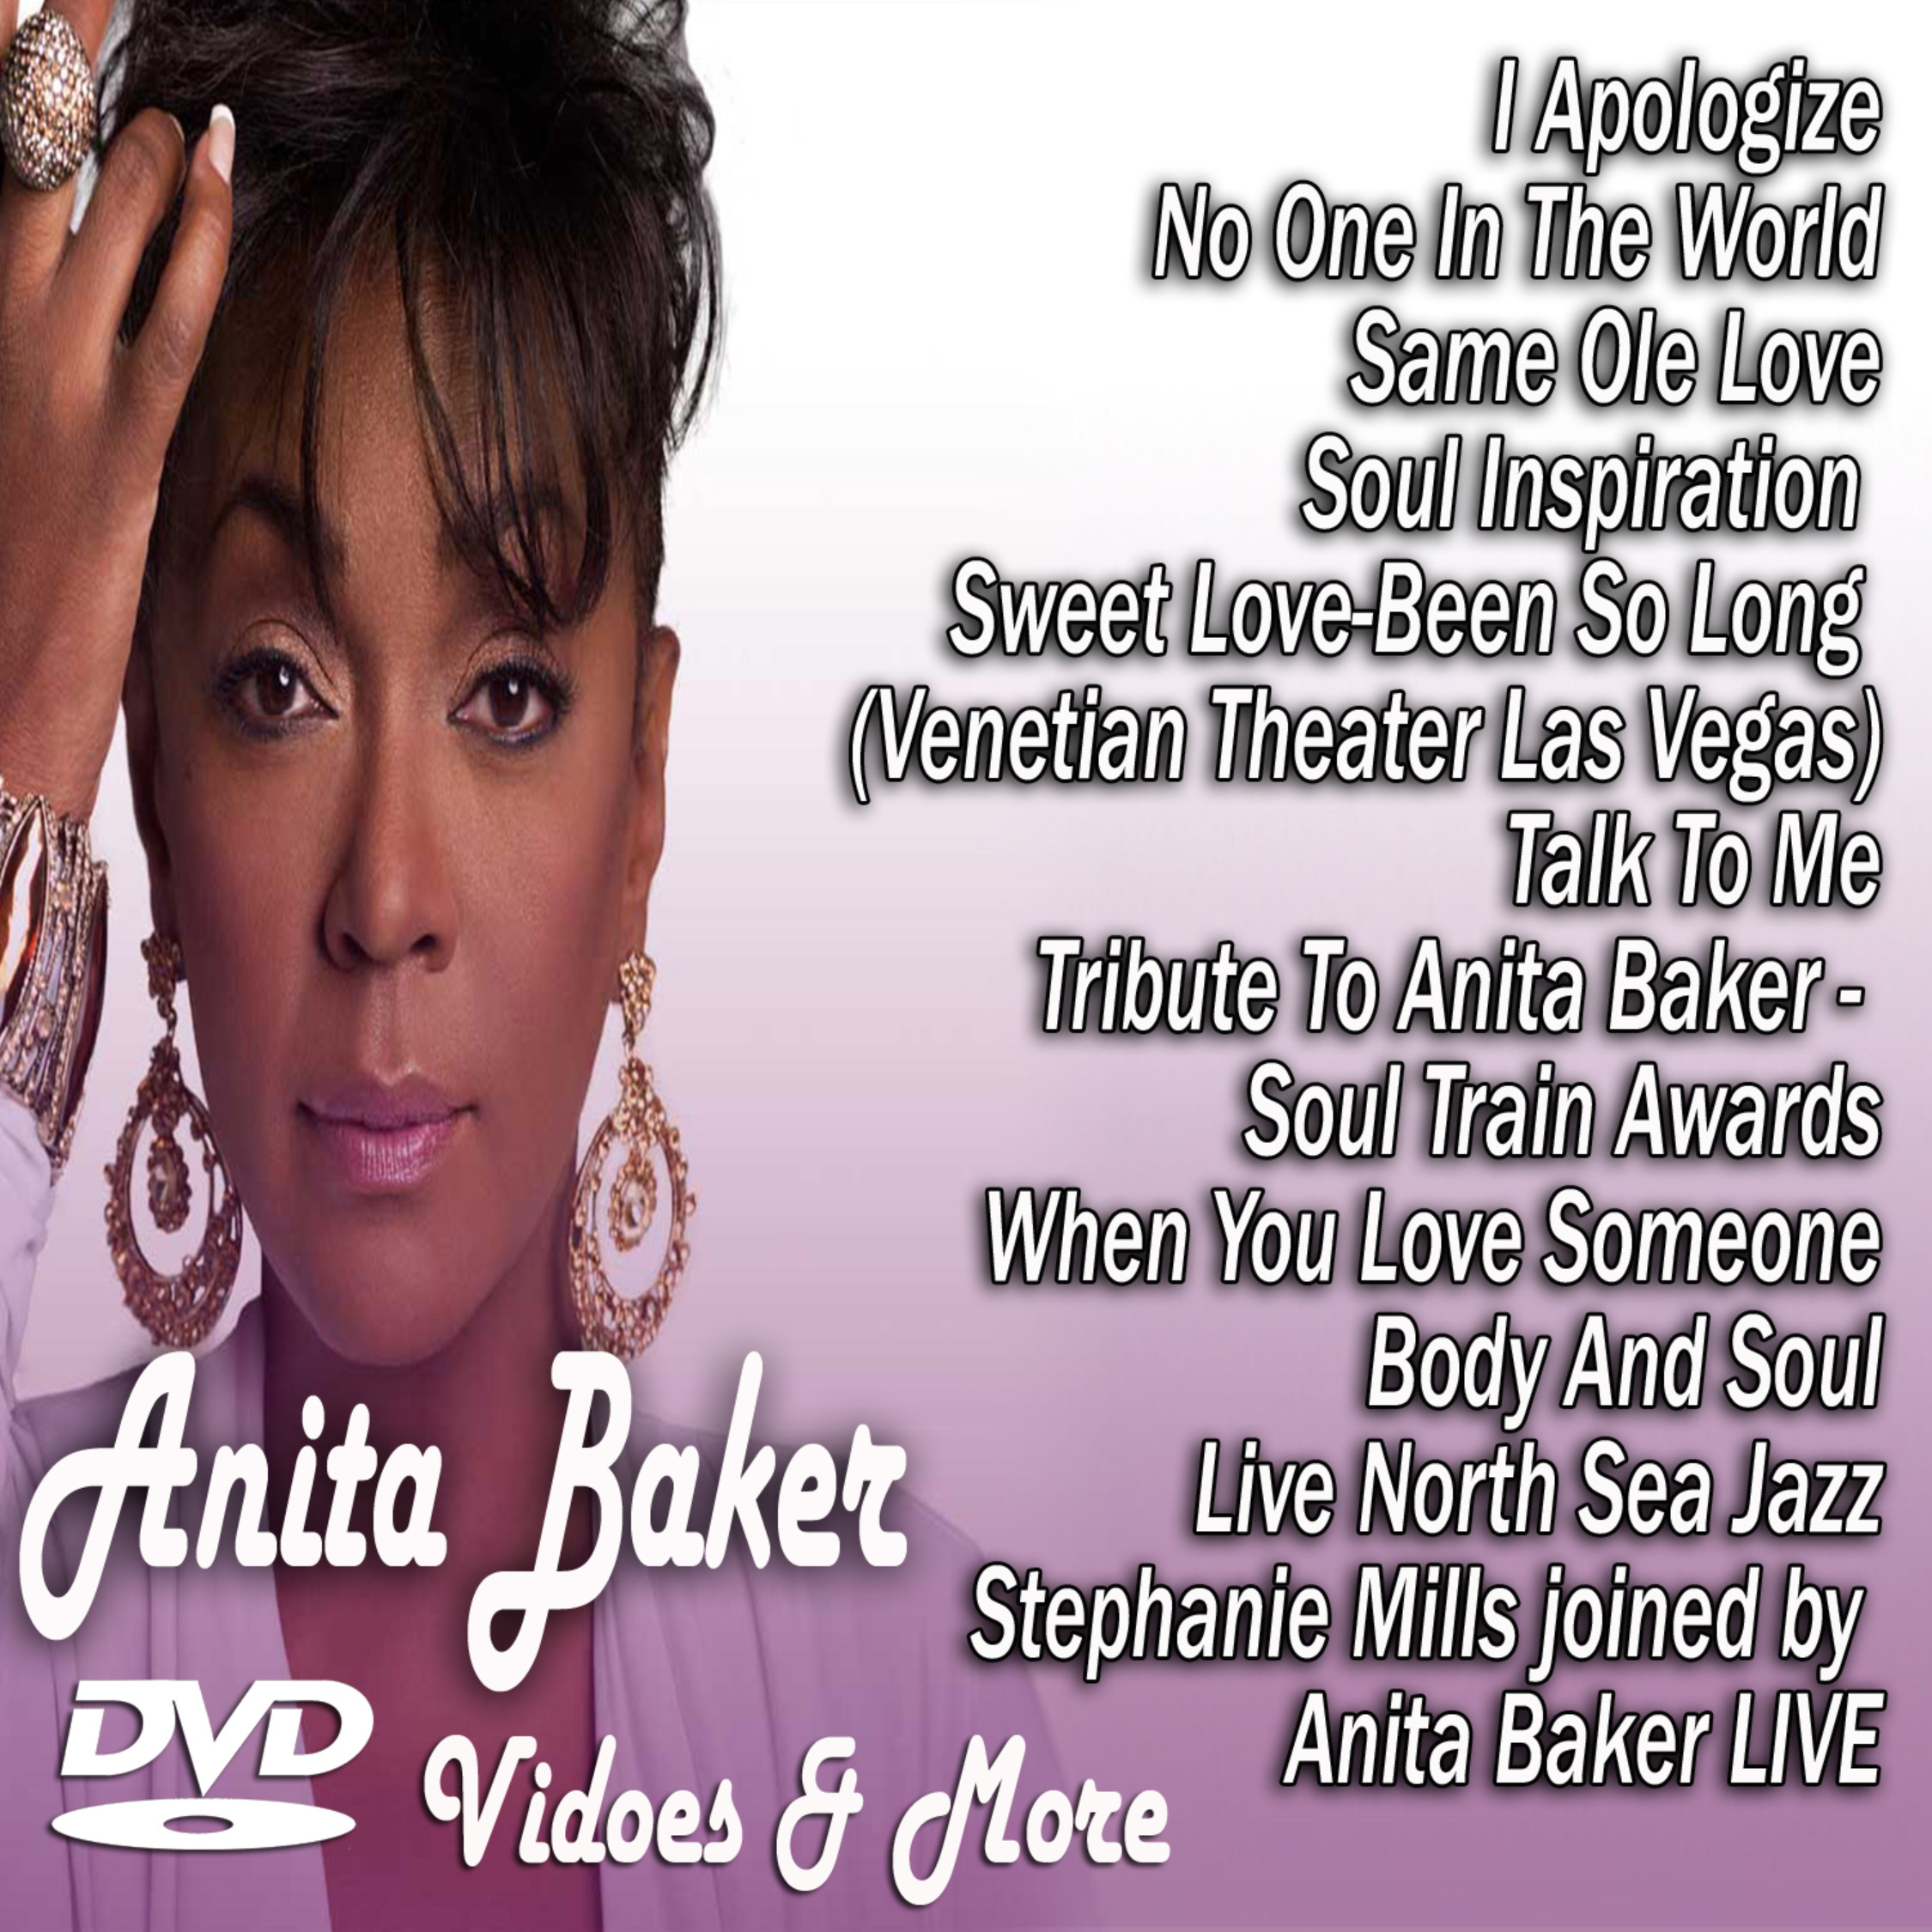 ANITA BAKER CLASSICS - Music Video Collection MP4